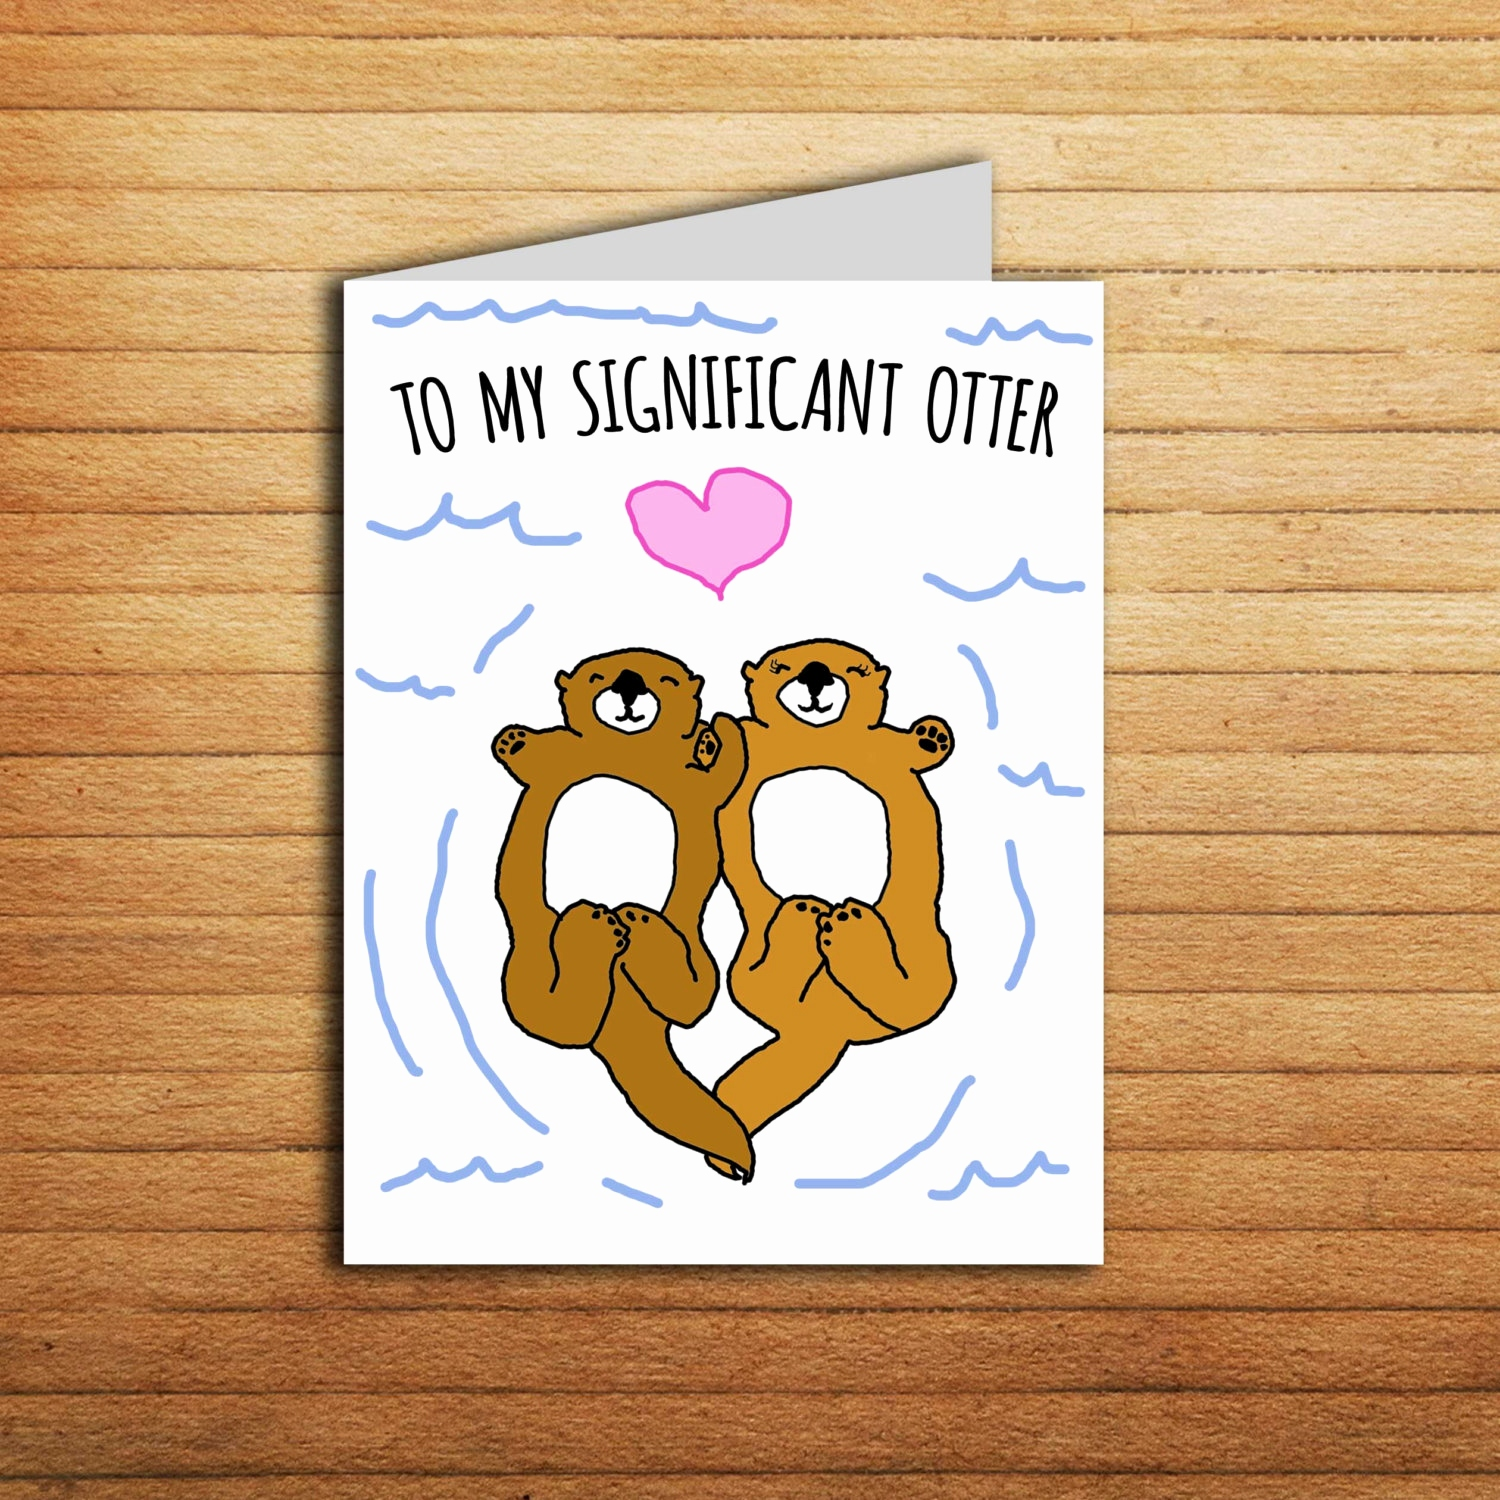 printable romantic birthday cards for her ; printable-romantic-birthday-cards-for-her-awesome-significant-otter-card-romantic-anniversary-card-printable-of-printable-romantic-birthday-cards-for-her